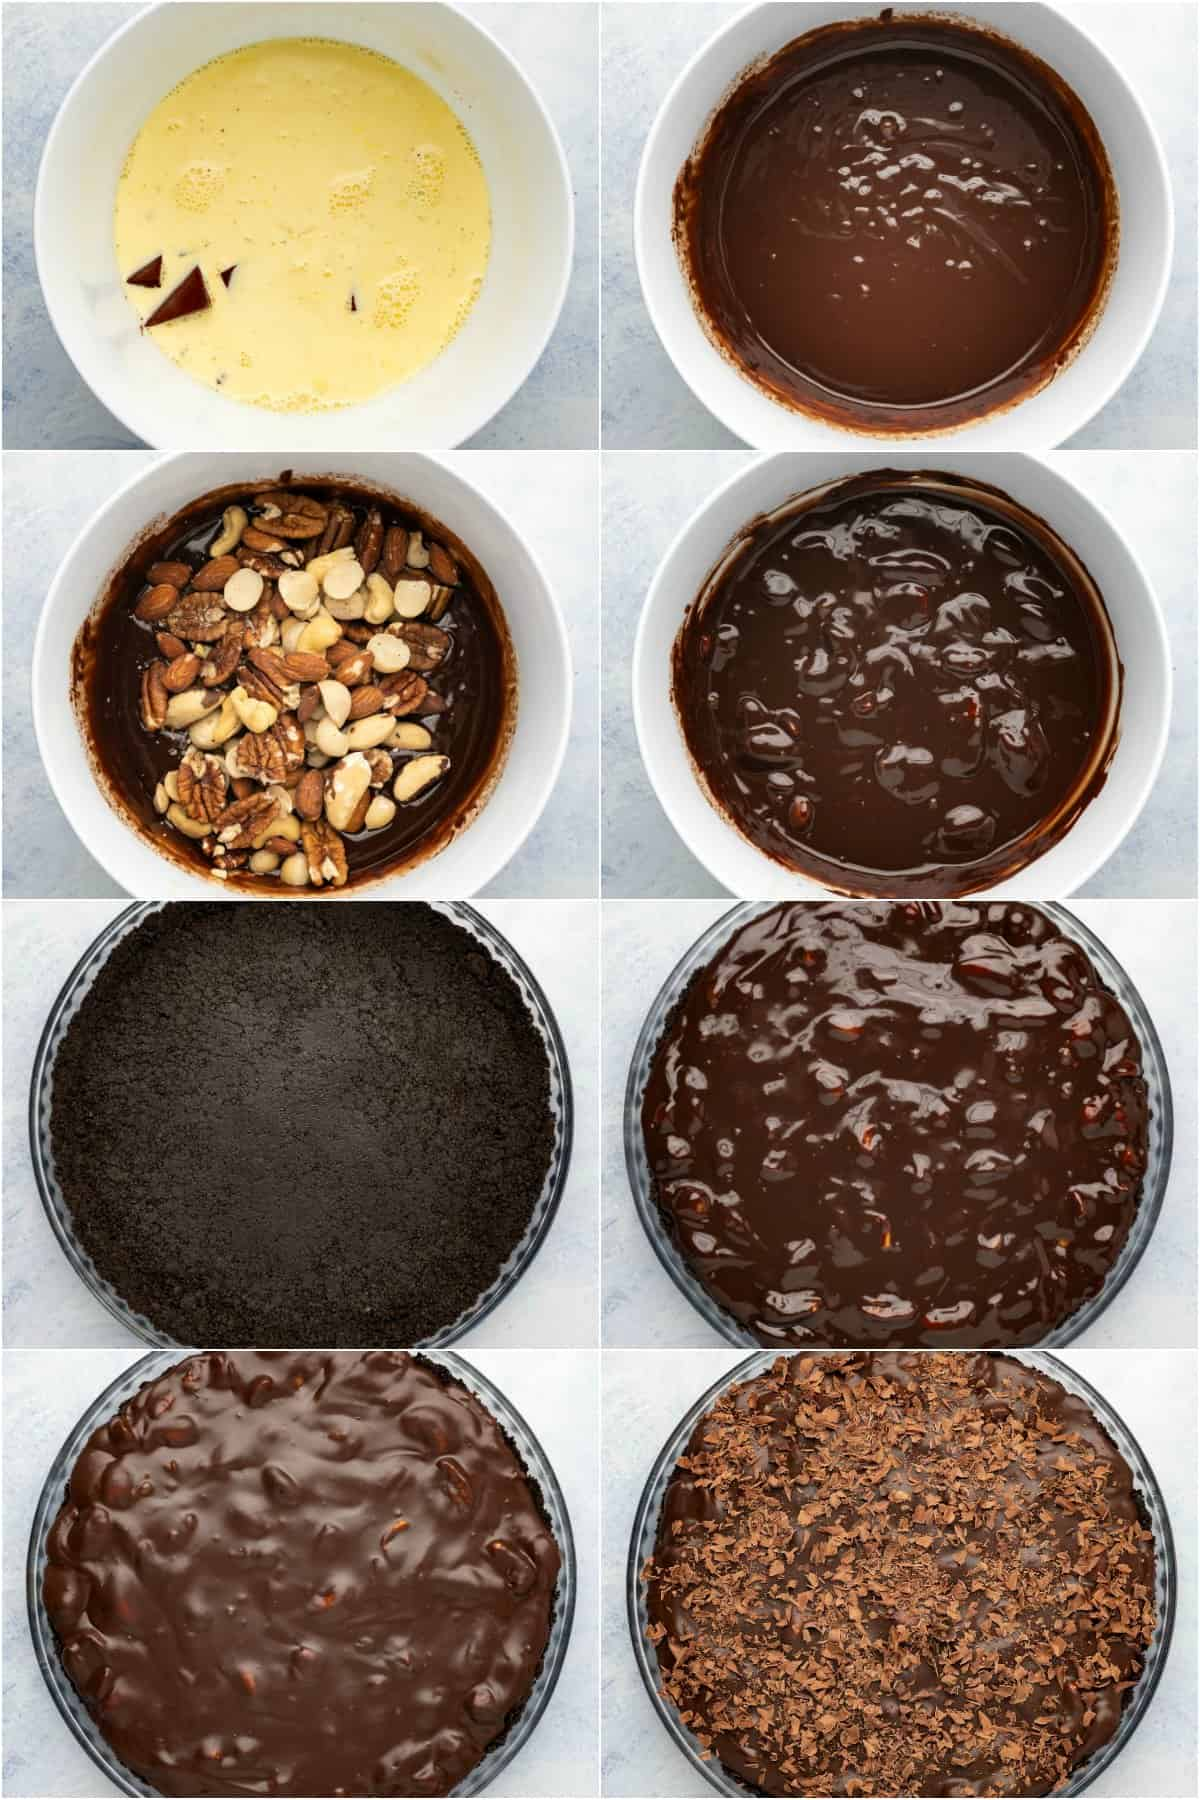 Step by step process photo collage of making a chocolate tart.